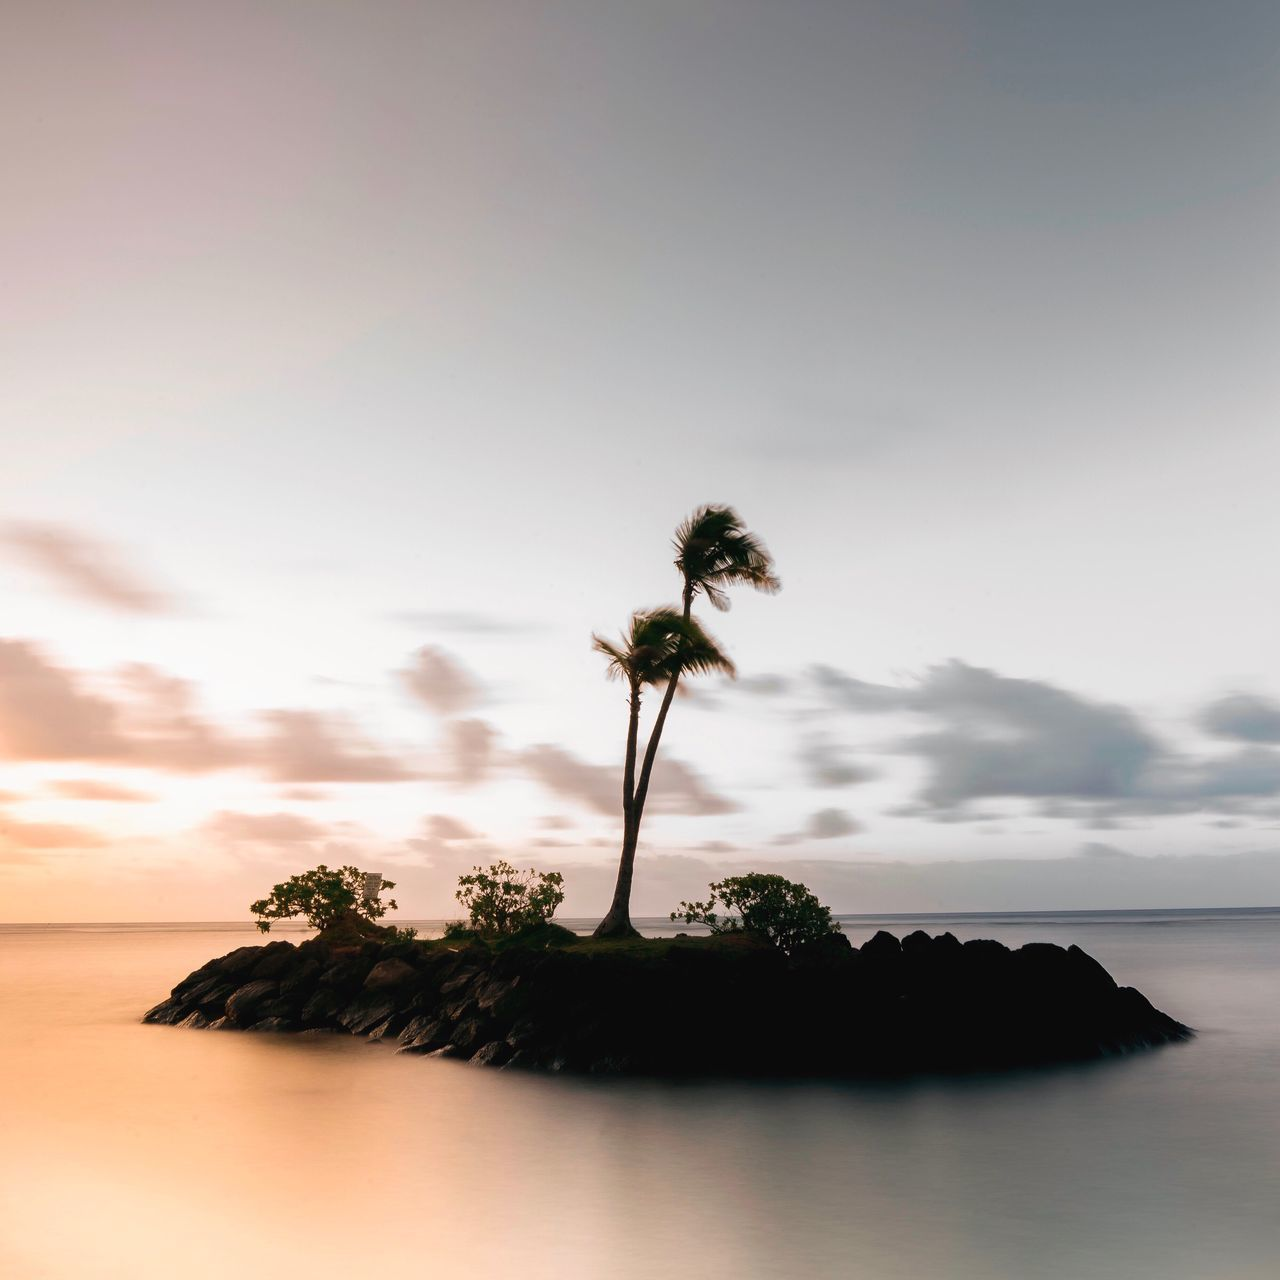 Palm Tree Sea Tree Nature Beach Sky Horizon Over Water No People Beauty In Nature Tranquility Scenics Tranquil Scene Water Sunset Outdoors Day Single Tree